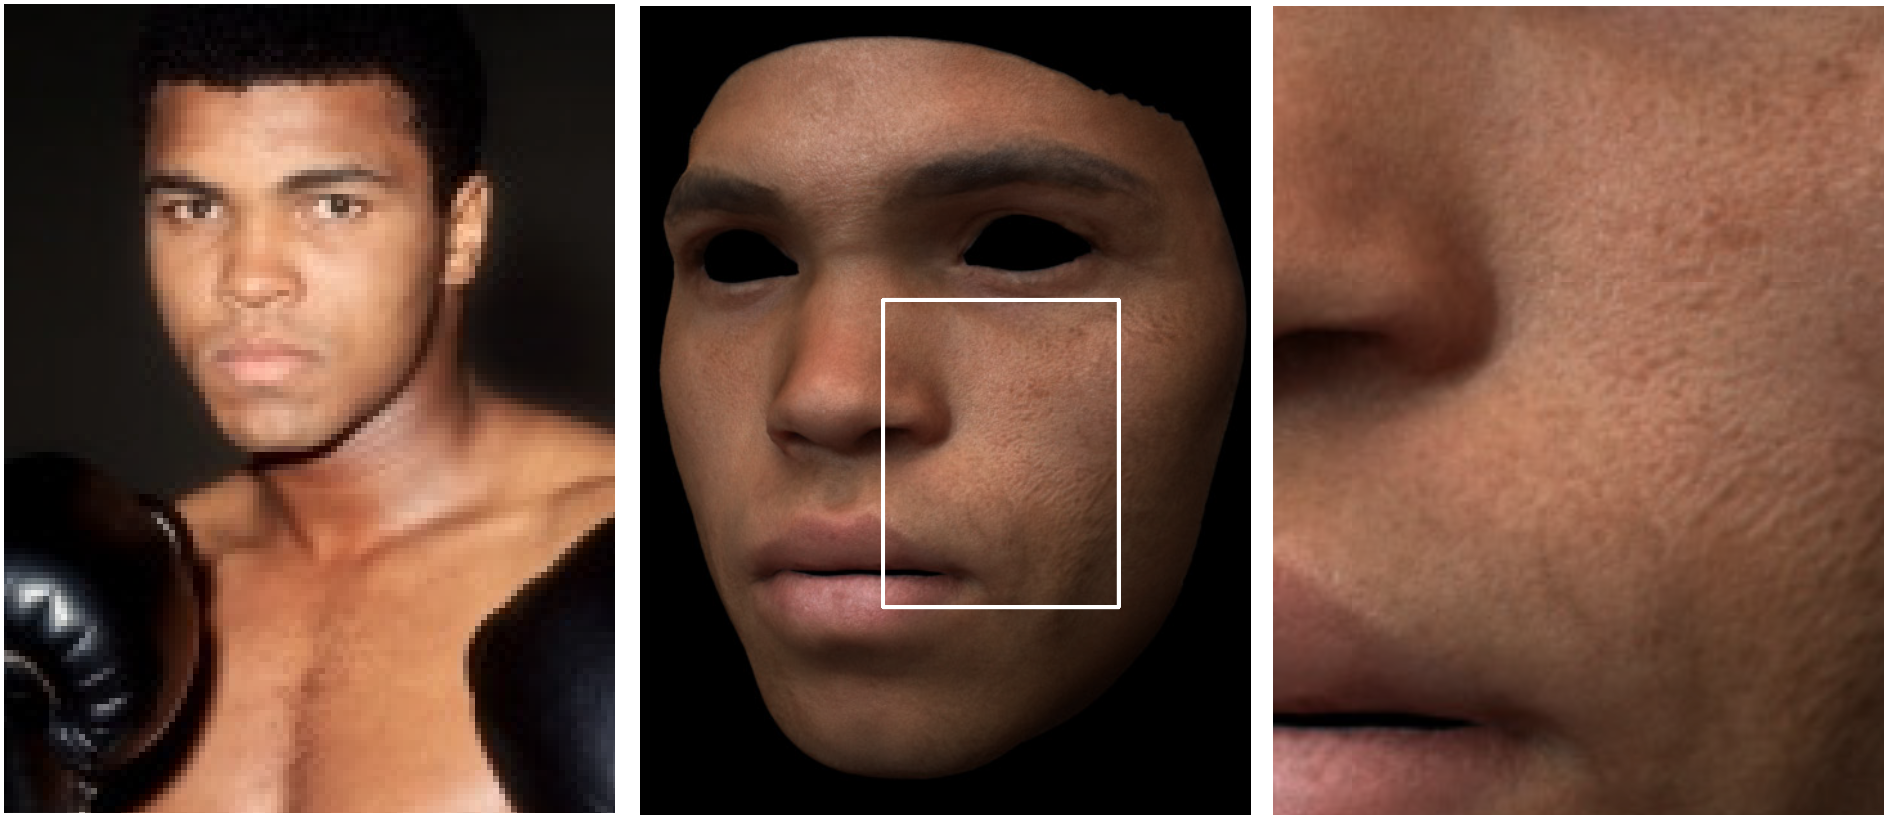 Face texture